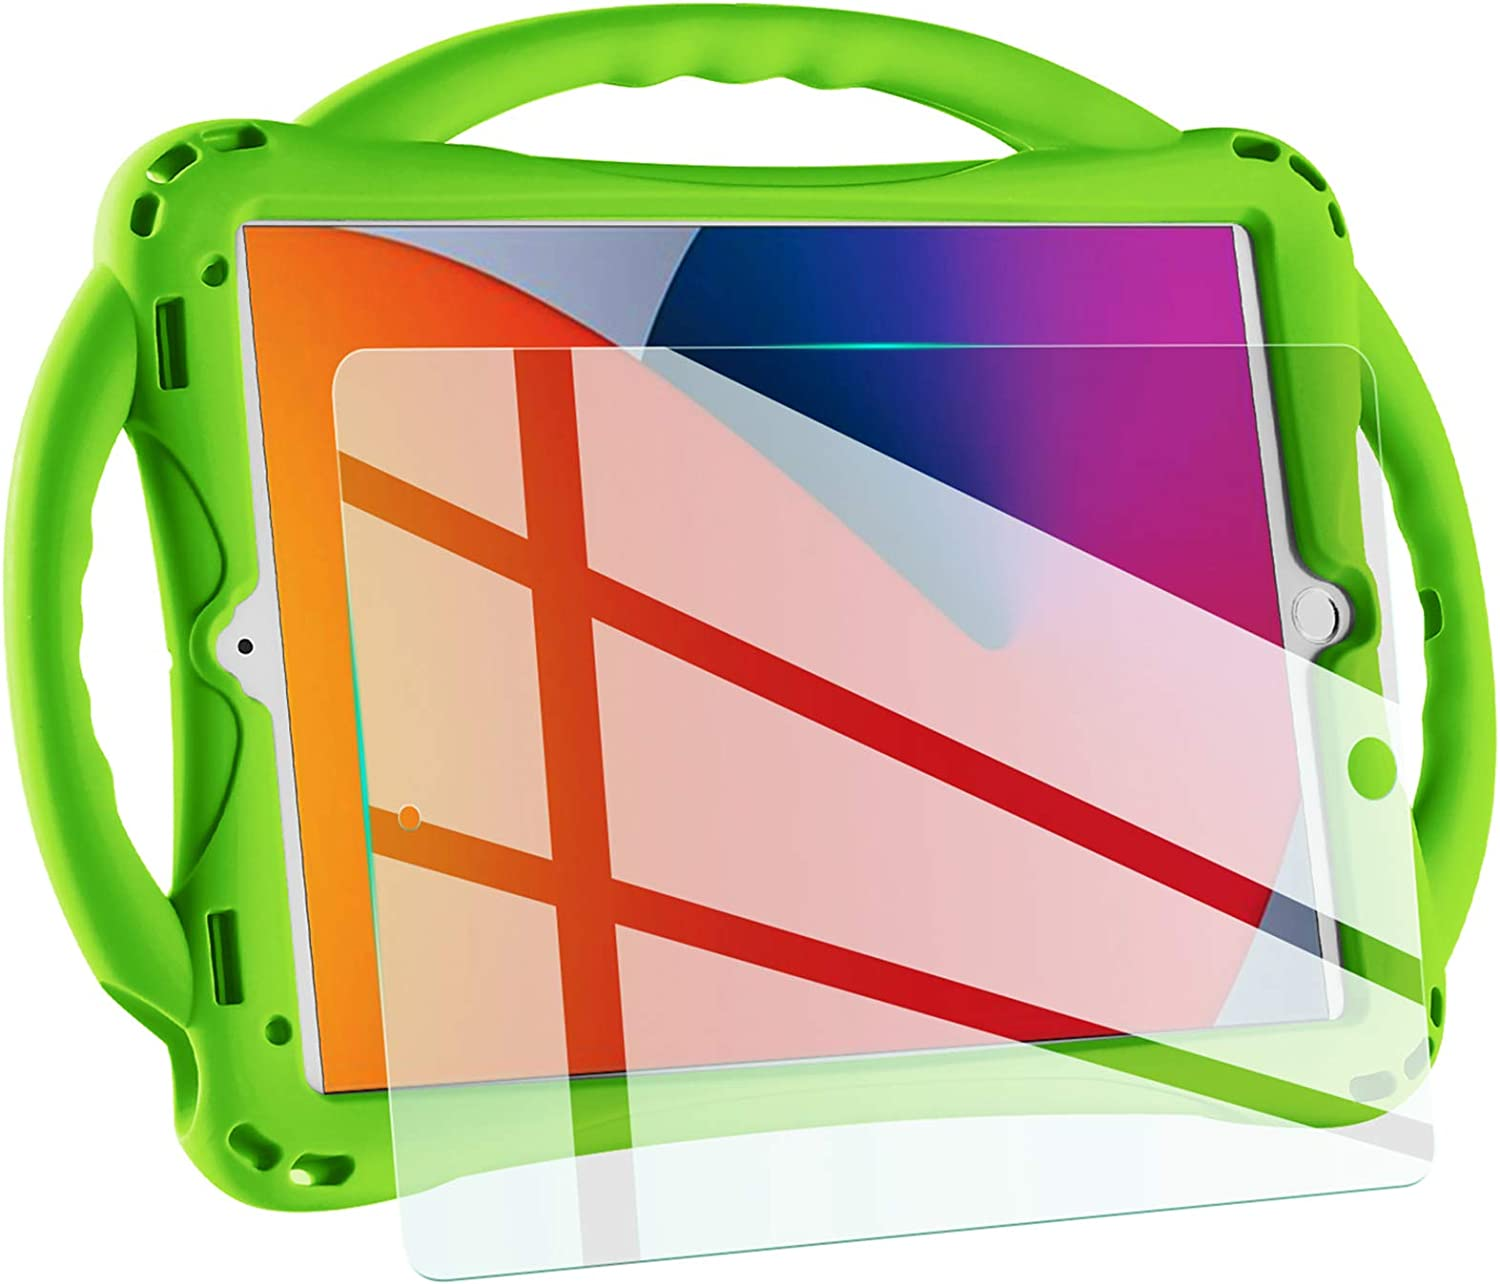 TopEsct Kids case for New ipad 10.2 2020/2019, iPad 8th/7th Generation Case for Kids,with Tempered Glass Screen Protector and Strap,Premium Silicone Shockproof ipad 10.2